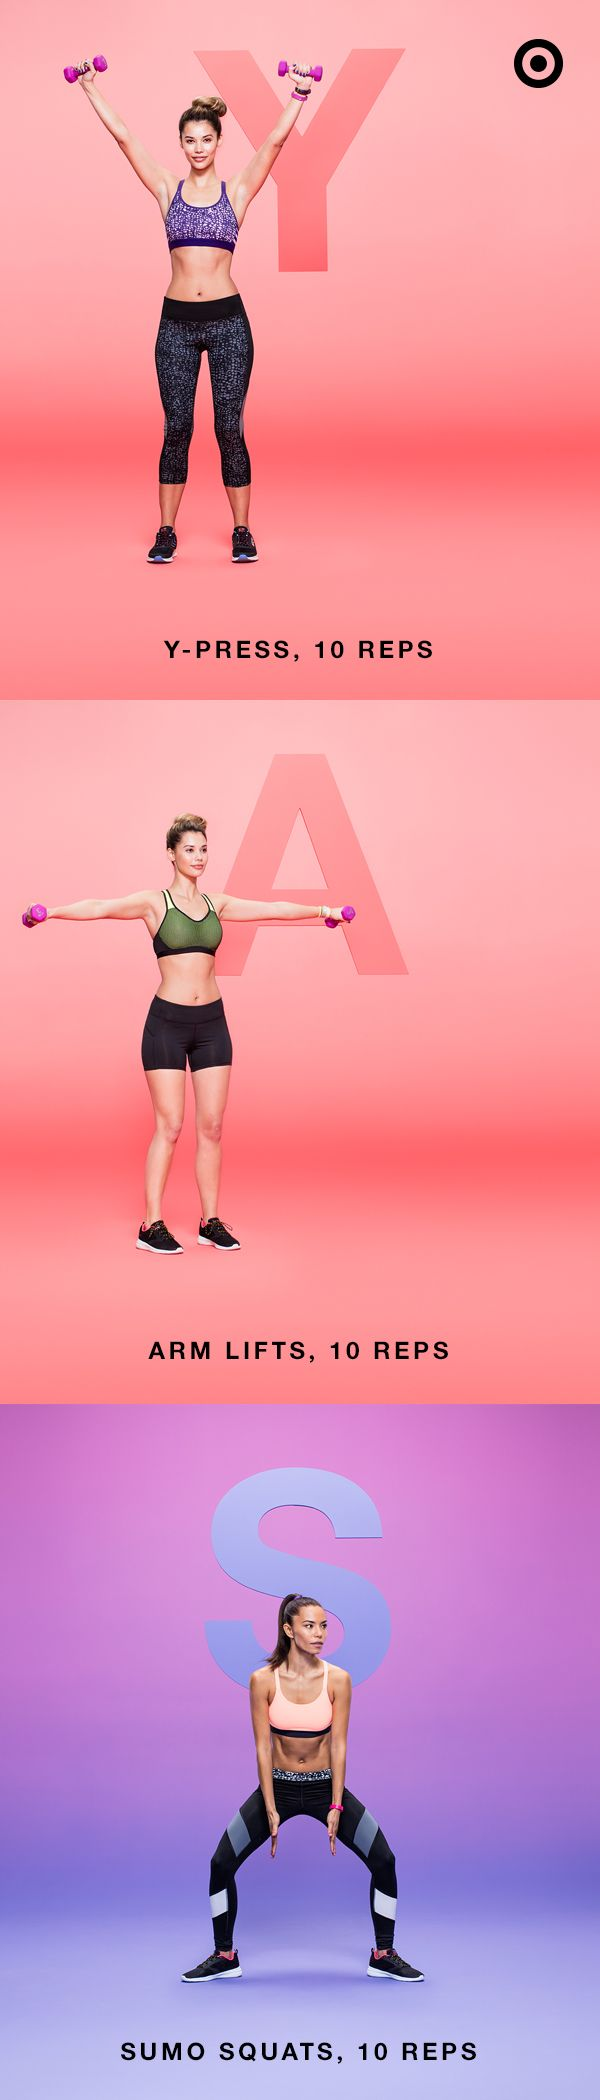 """You know what they say: no days off. So here's a full body workout you can do anywhere—especially when you're sporting an all-new C9 Champion® Power Core® or Power Shape™ sports bra. With an all-new range of colors, patterns and textures, it's athletic gear perfect for every workout move there is—from A to Z. Complete 3 sets of this workout for particularly """"YAS"""" results."""